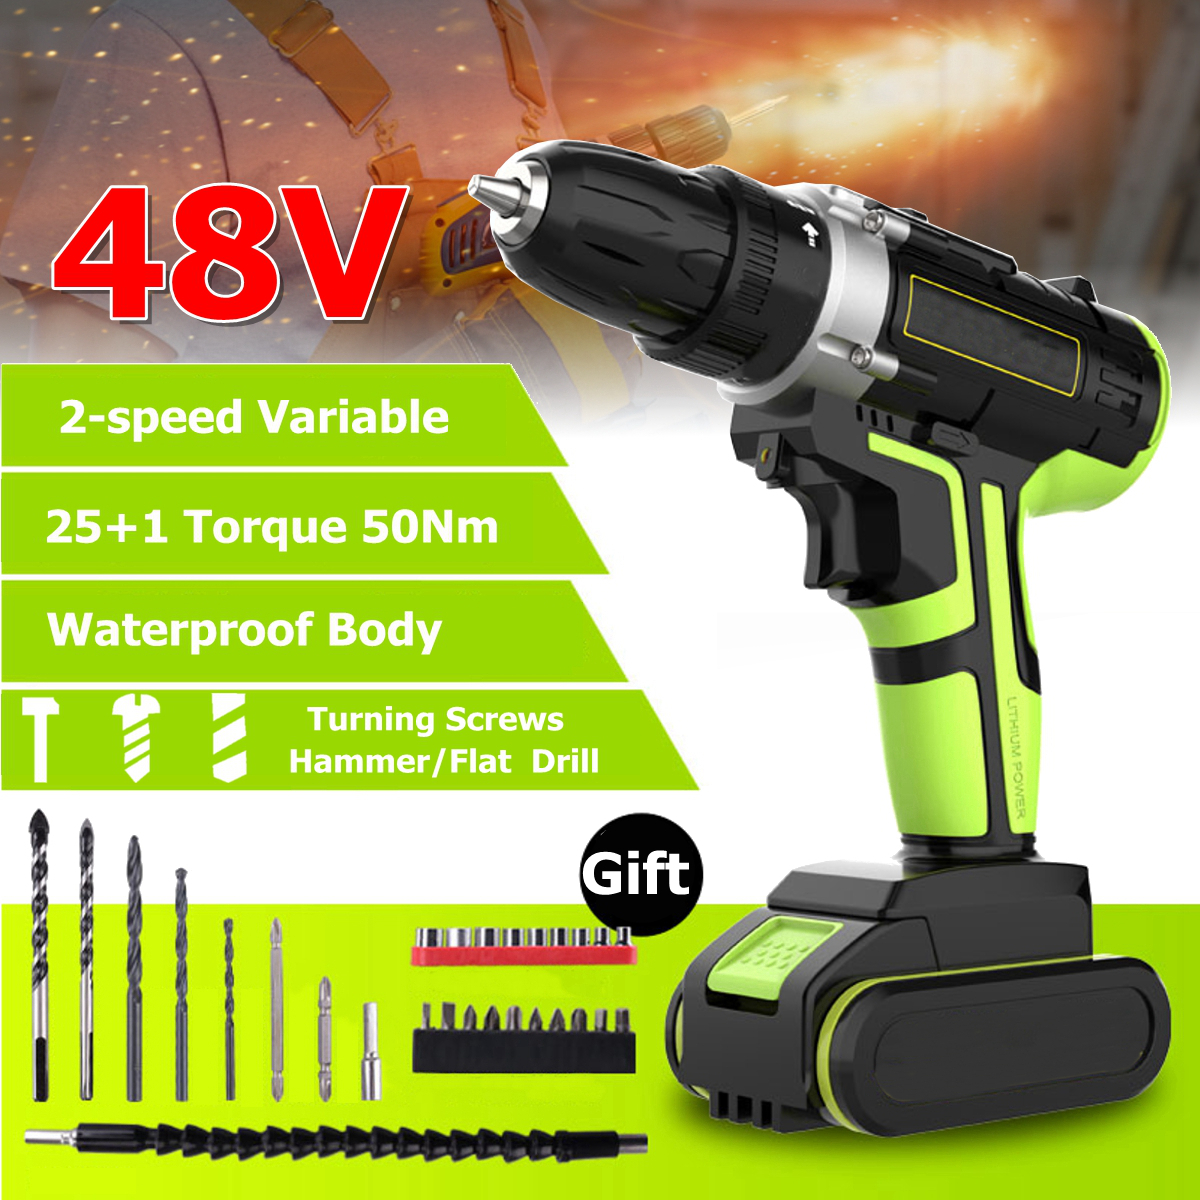 3 In 1 Hammer Drill 48V Cordless Drill Double Speed Power Drills LED lighting 1/2Pcs Large Capacity Battery 50Nm 25 1 Torque Electric Drill